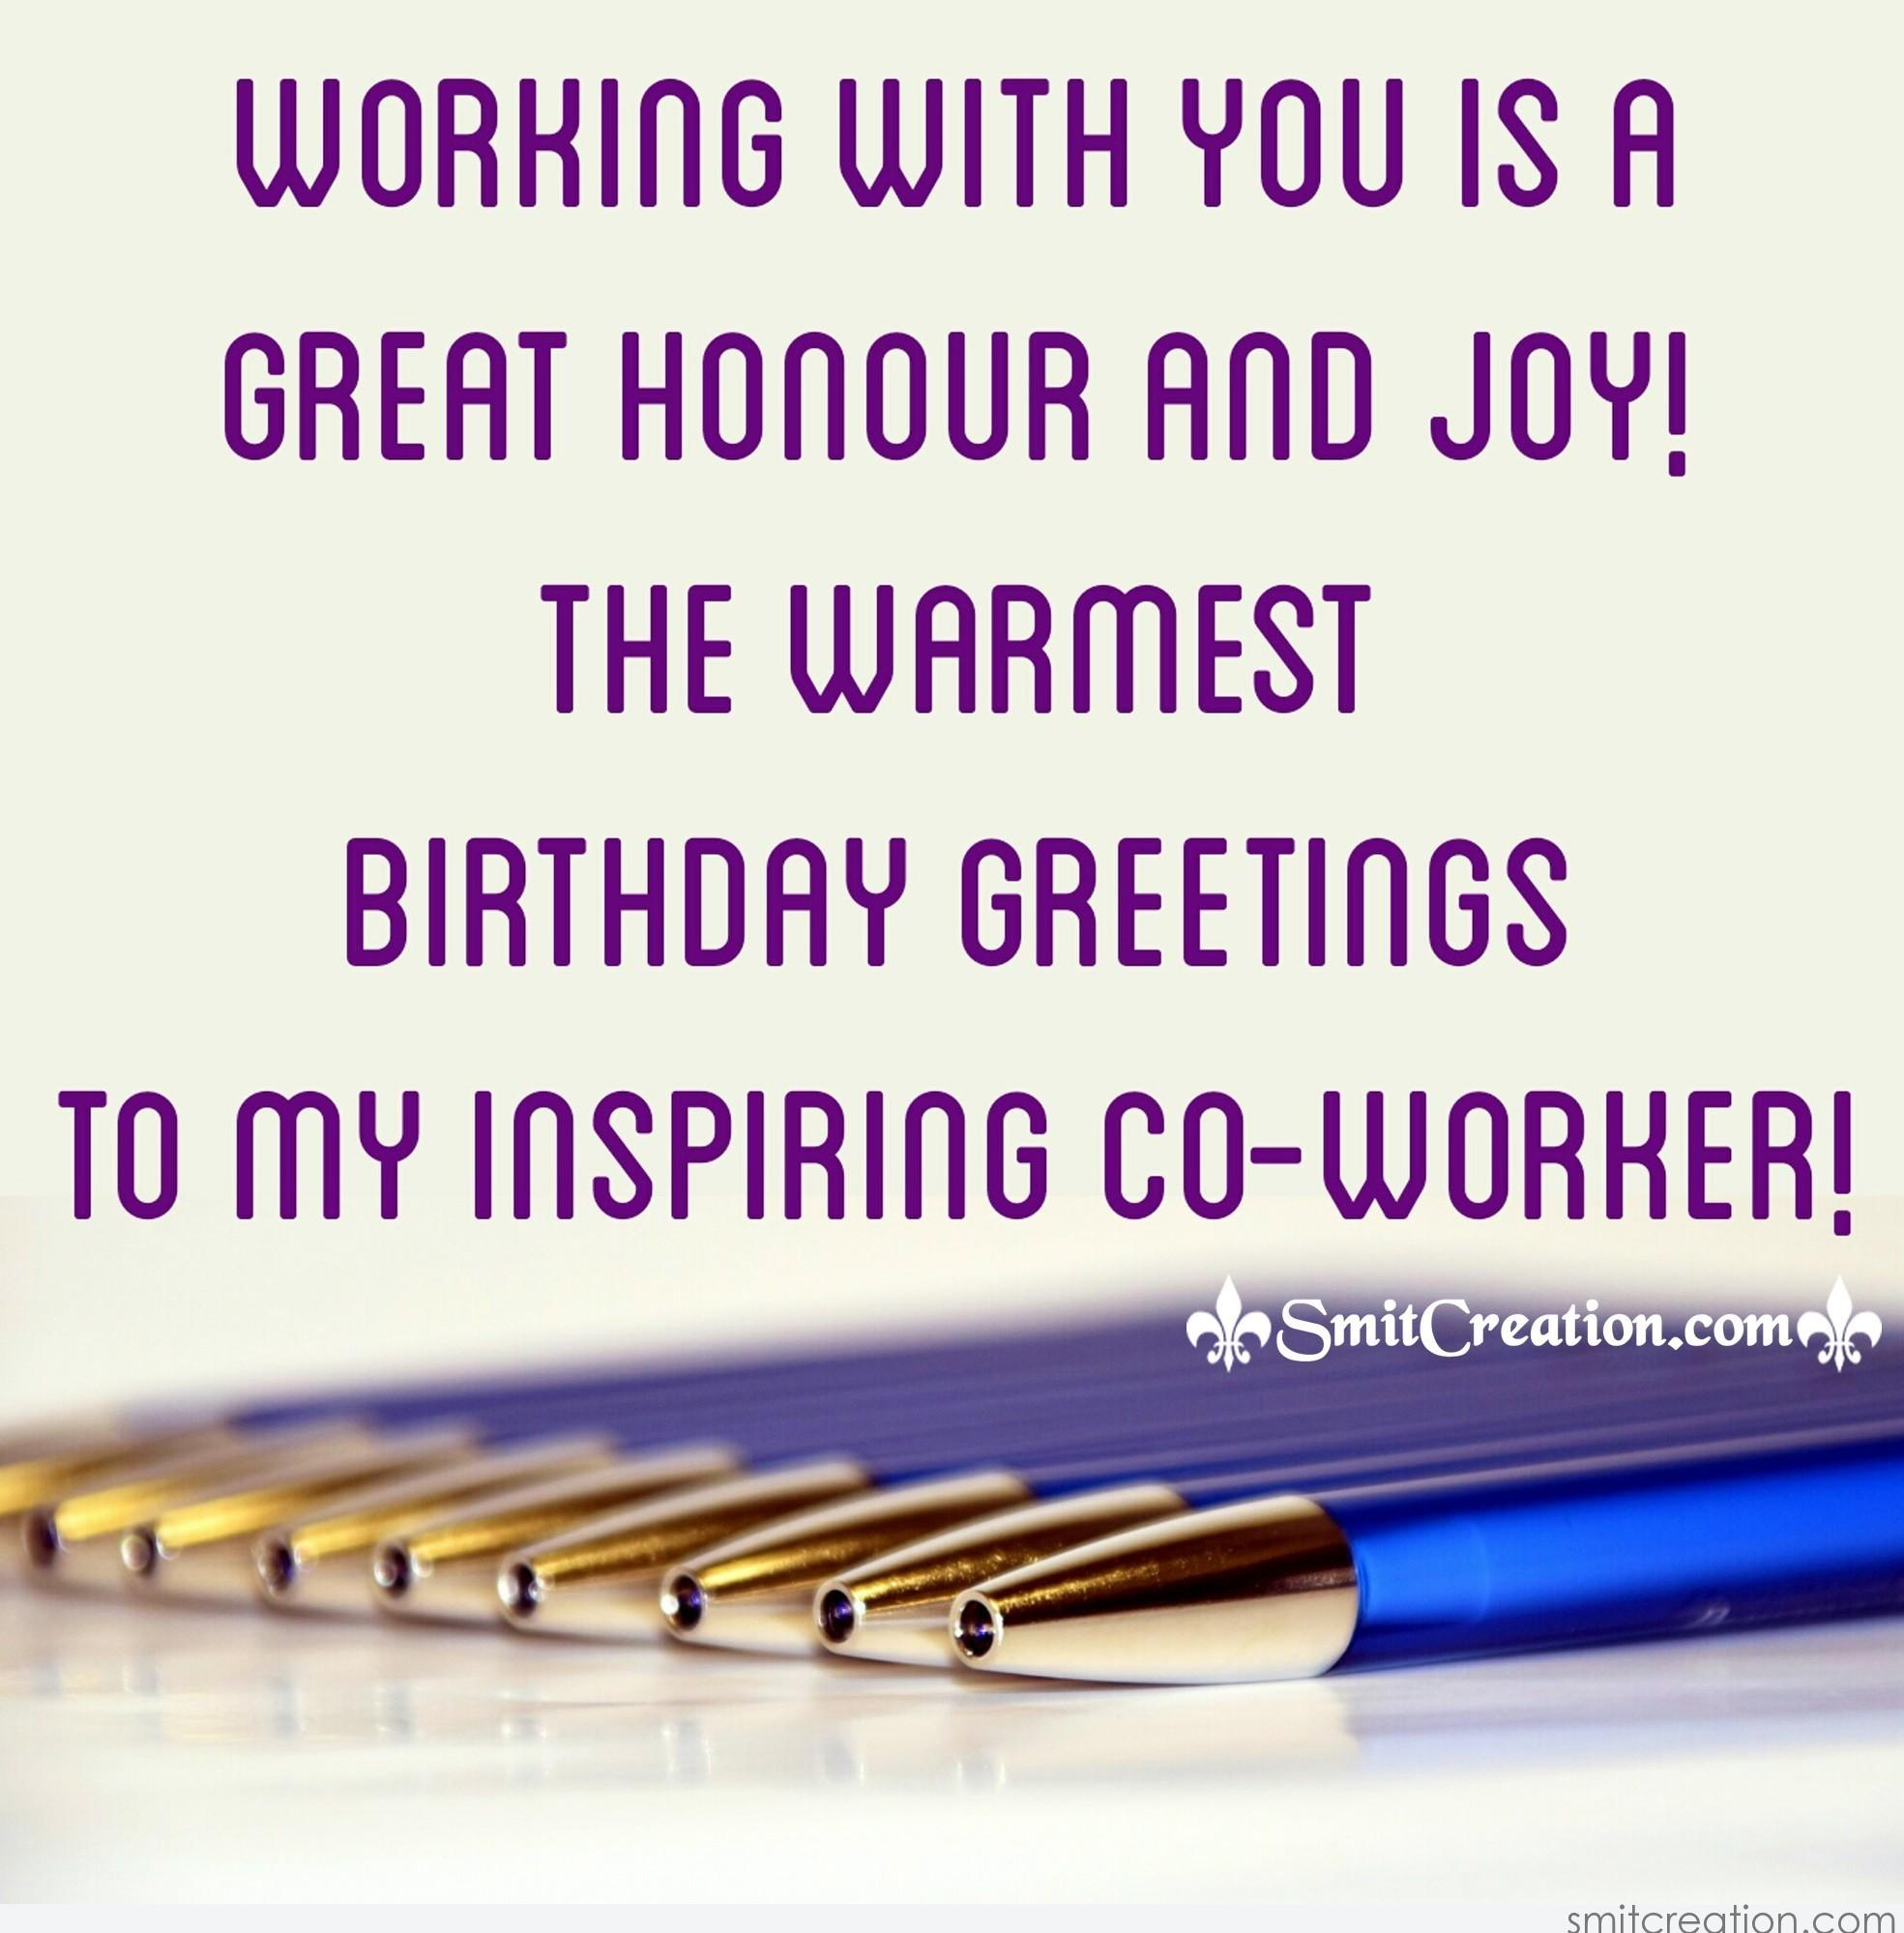 Birthday Wishes For Colleague Pictures And Graphics Smitcreation